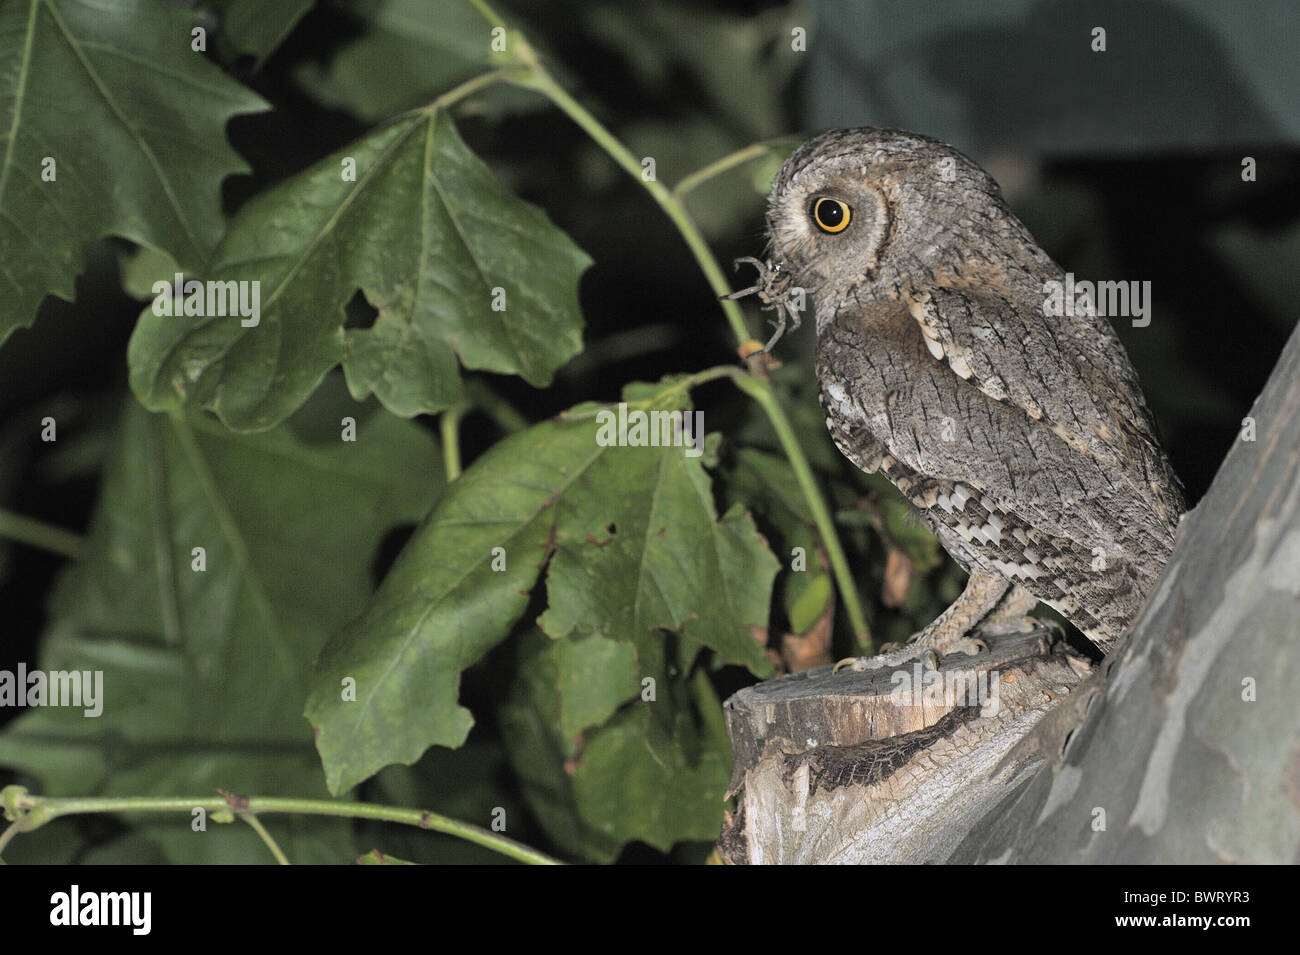 Scops owl - Eurasian scops owl - European scops owl (Otus scops) bringing prey  to feed its chicks waiting in a - Stock Image